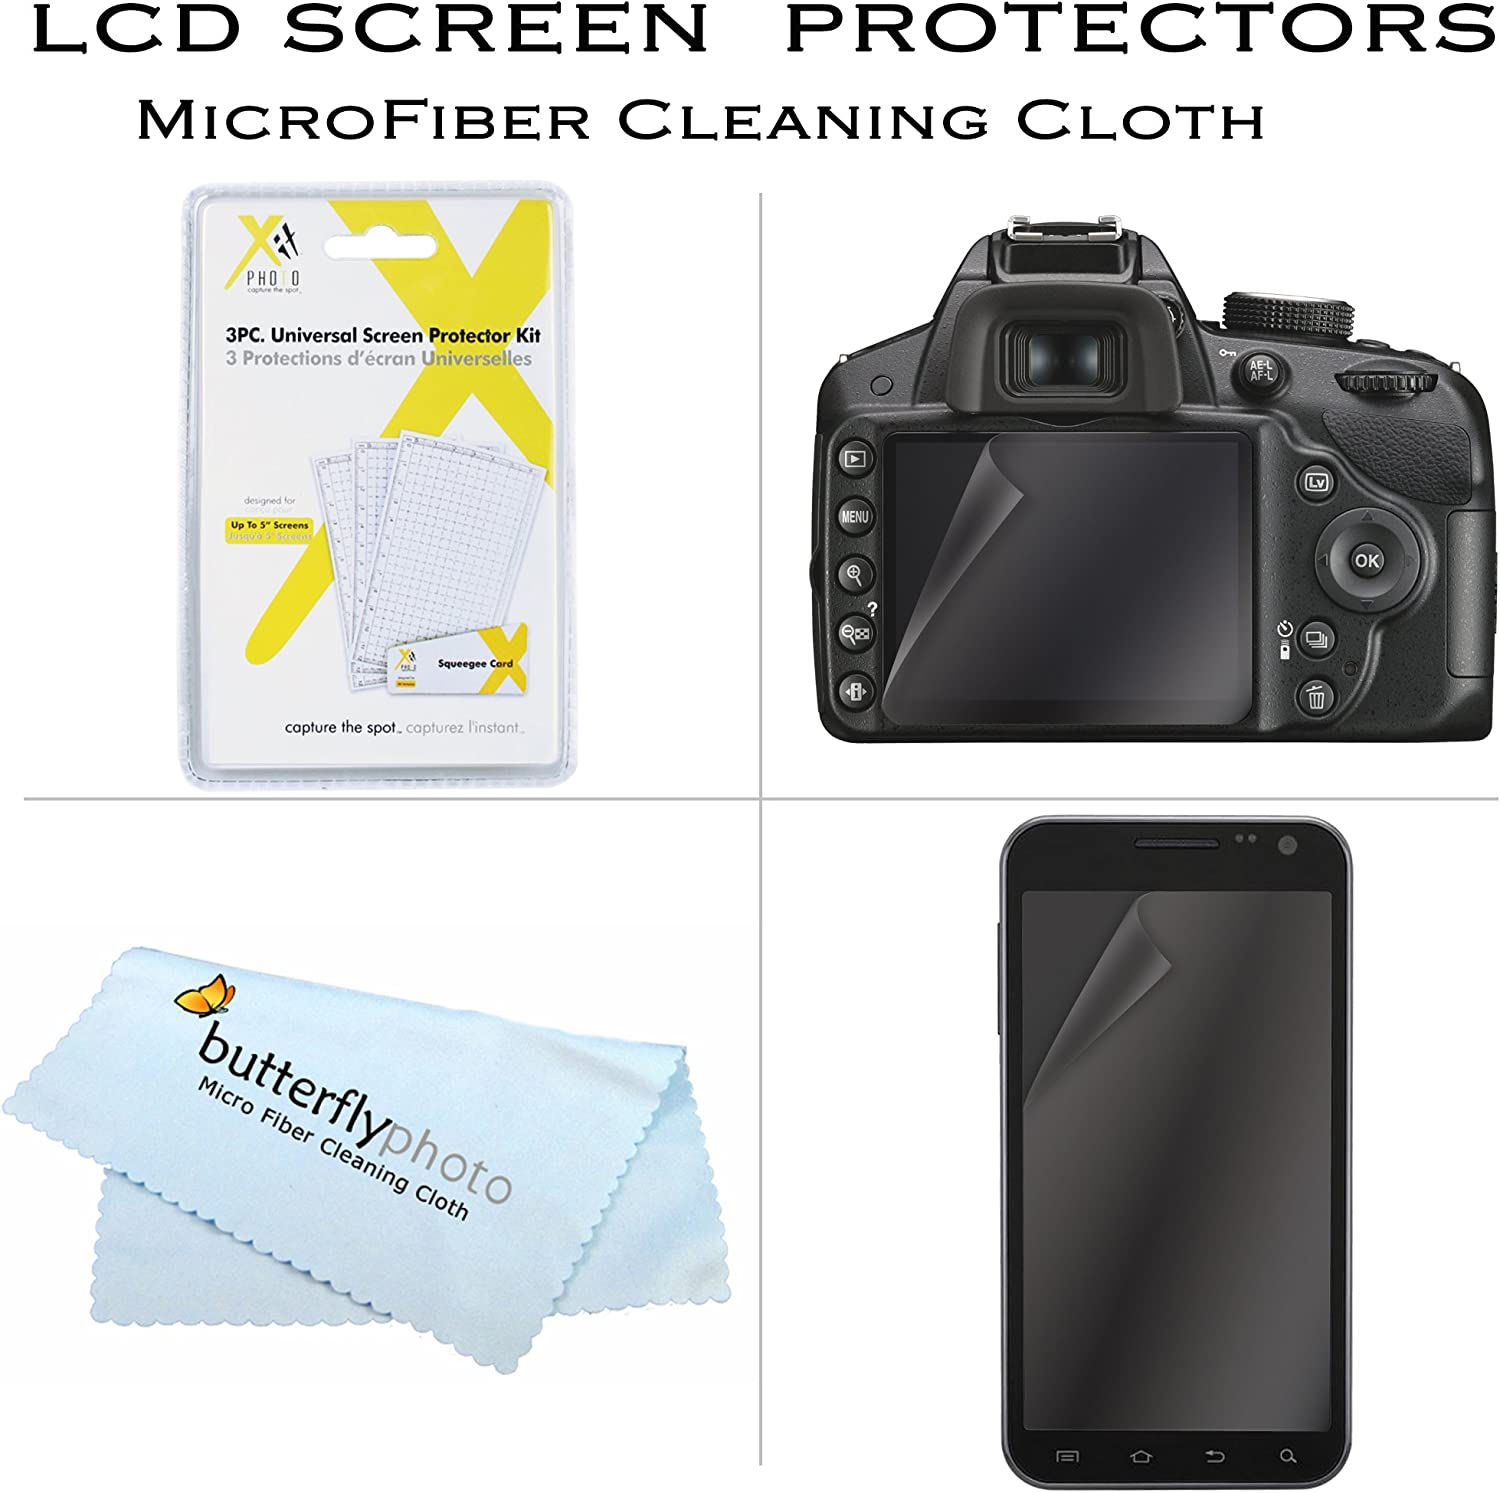 Mini TableTop Tripod SX410 IS LCD Screen Protectors Starter Accessories Kit For The Canon Powershot SX400 IS 50 Tripod With Case More SX420 IS Digital Camera Includes Deluxe Carrying Case